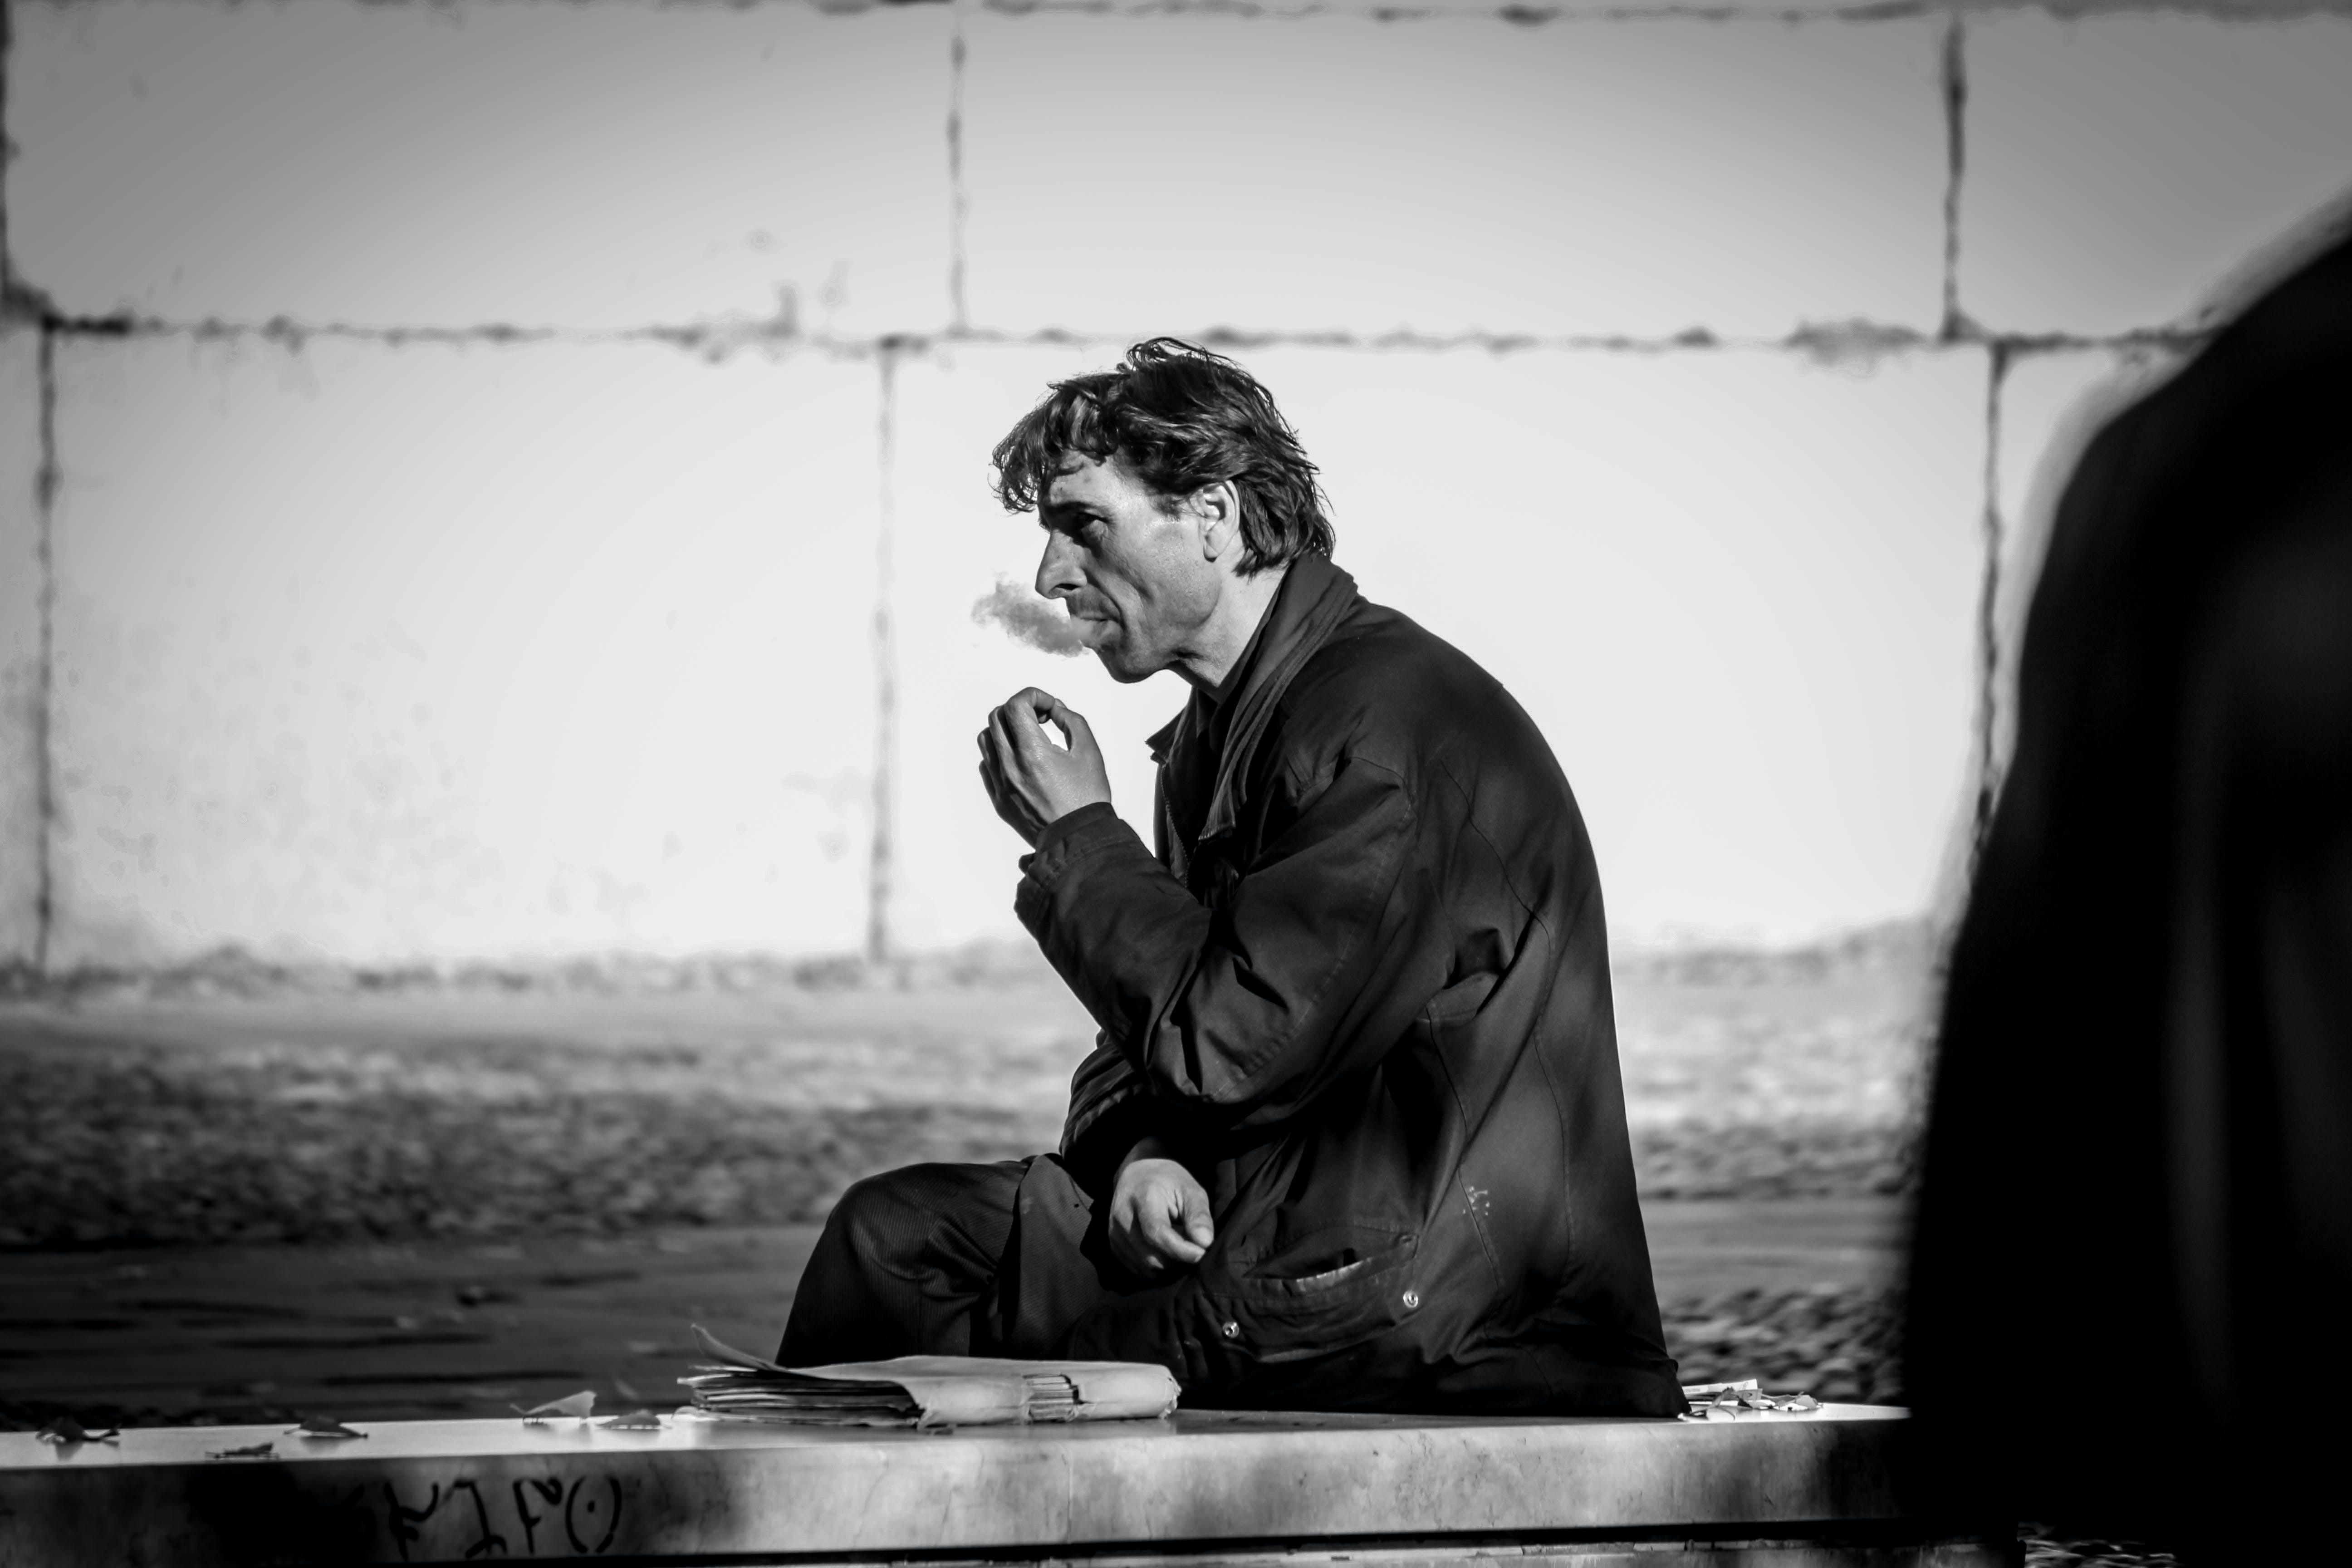 Grayscale Photo of Smoking Man While Sitting on Bench